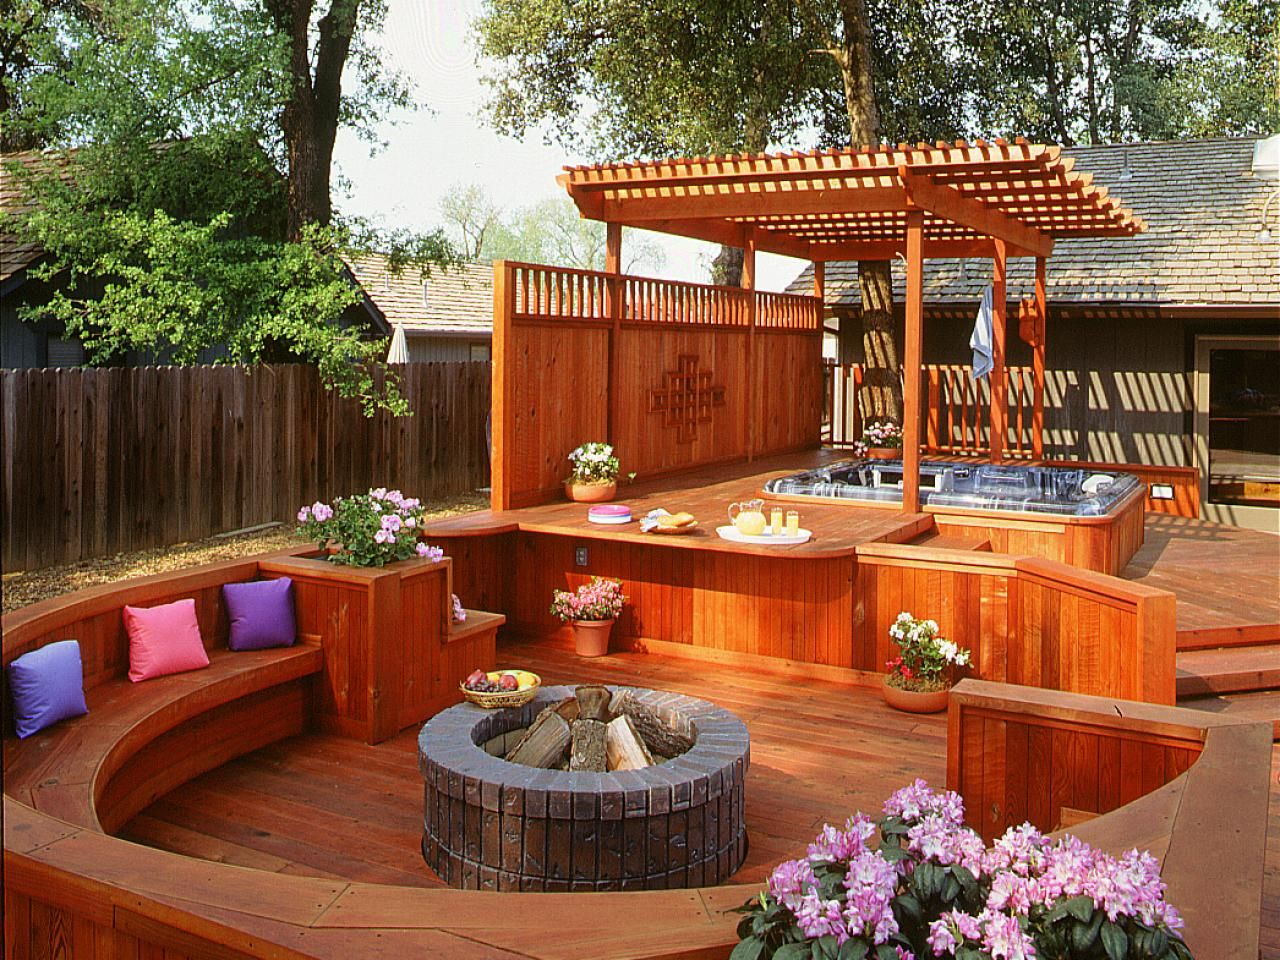 7 Sizzling Hot Tub Designs Outdoor Design Landscaping Ideas